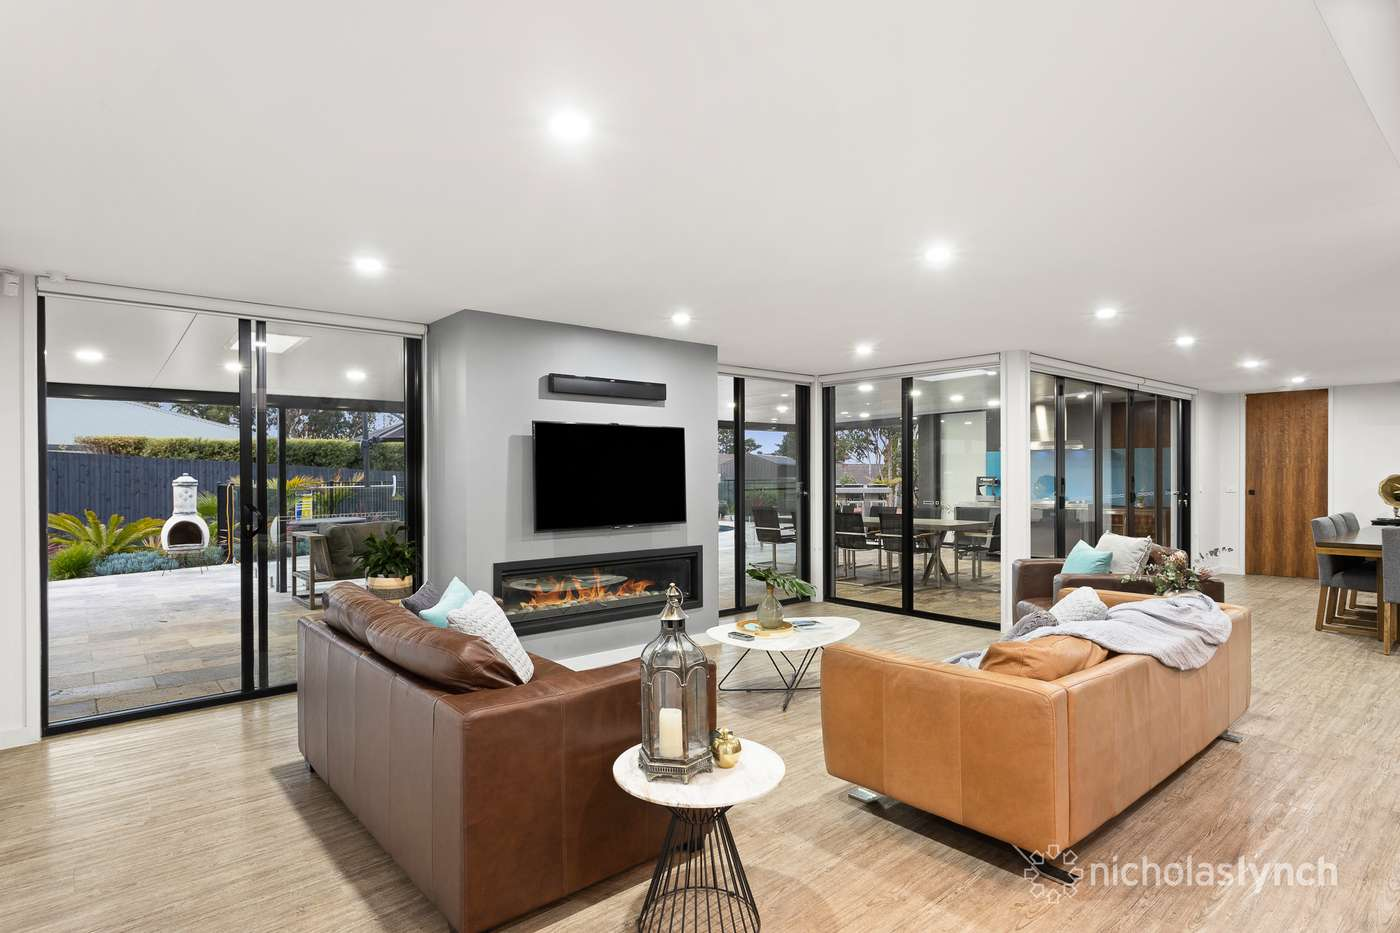 Main view of Homely house listing, 9 Bright Crescent, Mount Eliza, VIC 3930